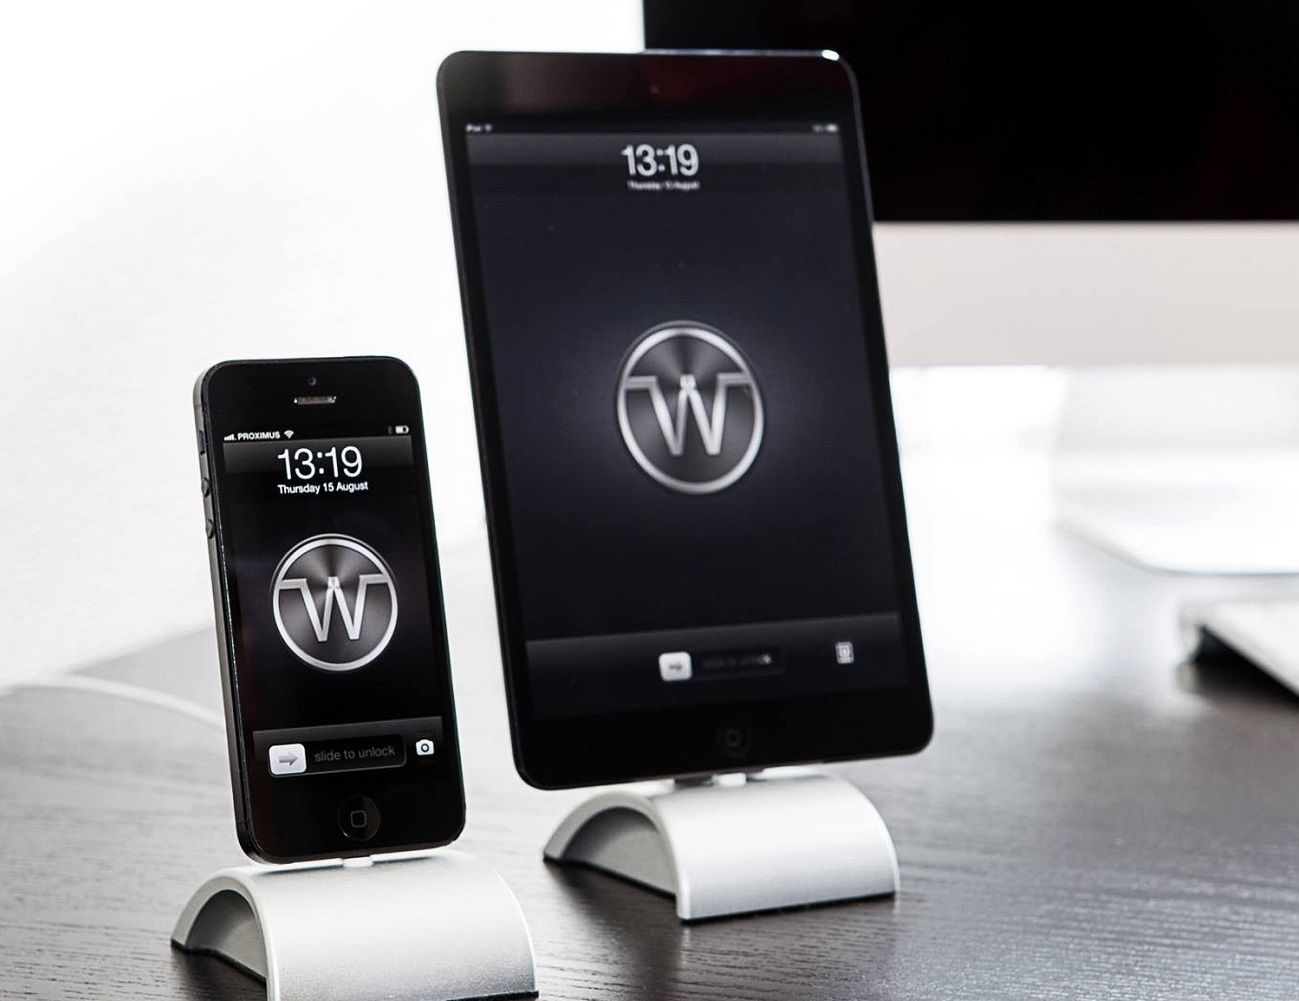 iDockAll Silver Dock for iPhones and iPods